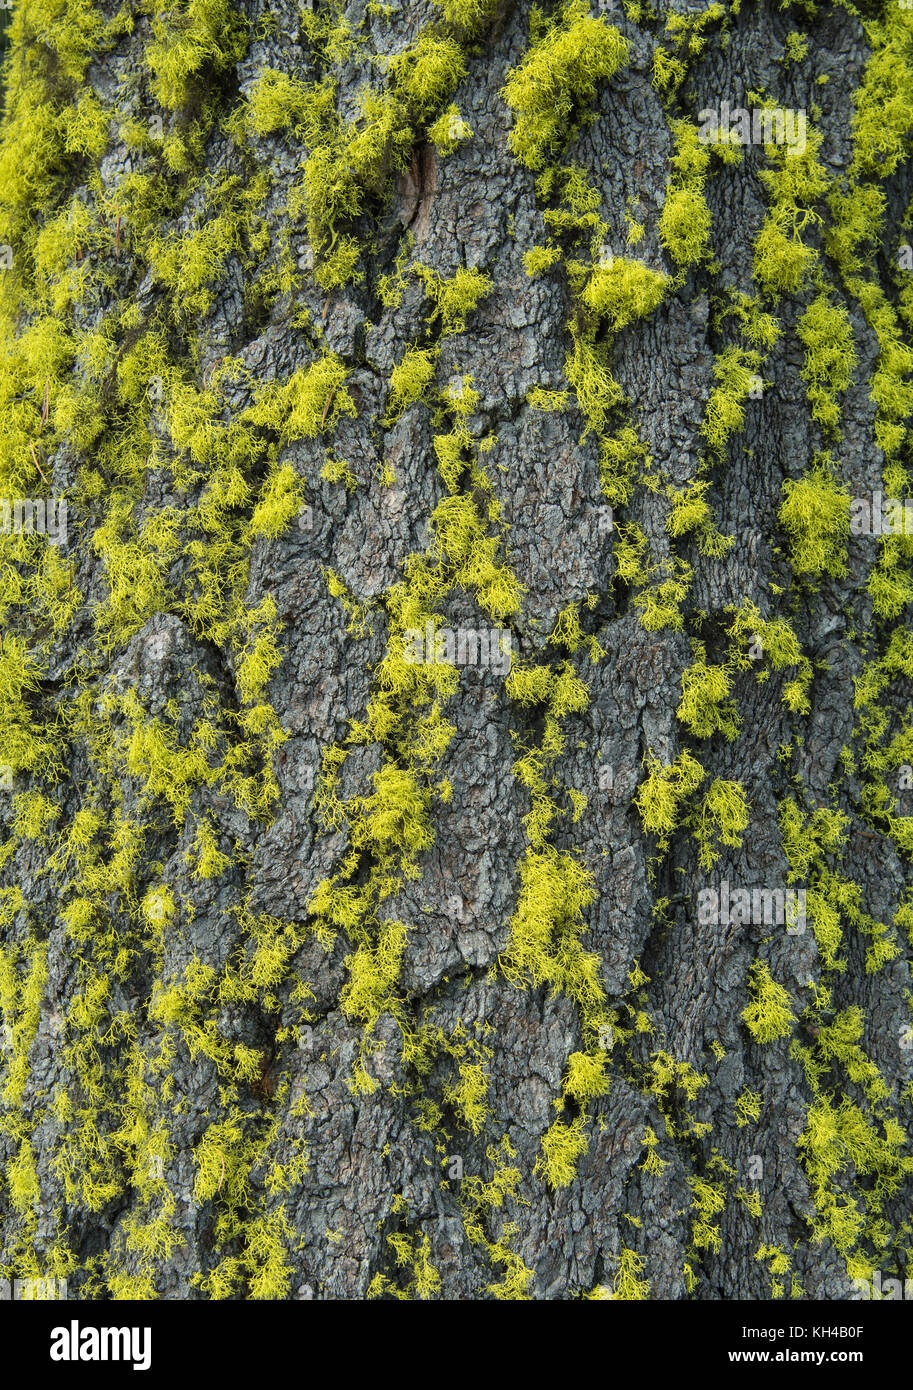 Bright Green Moss Clings to Bark of Tree - Stock Image